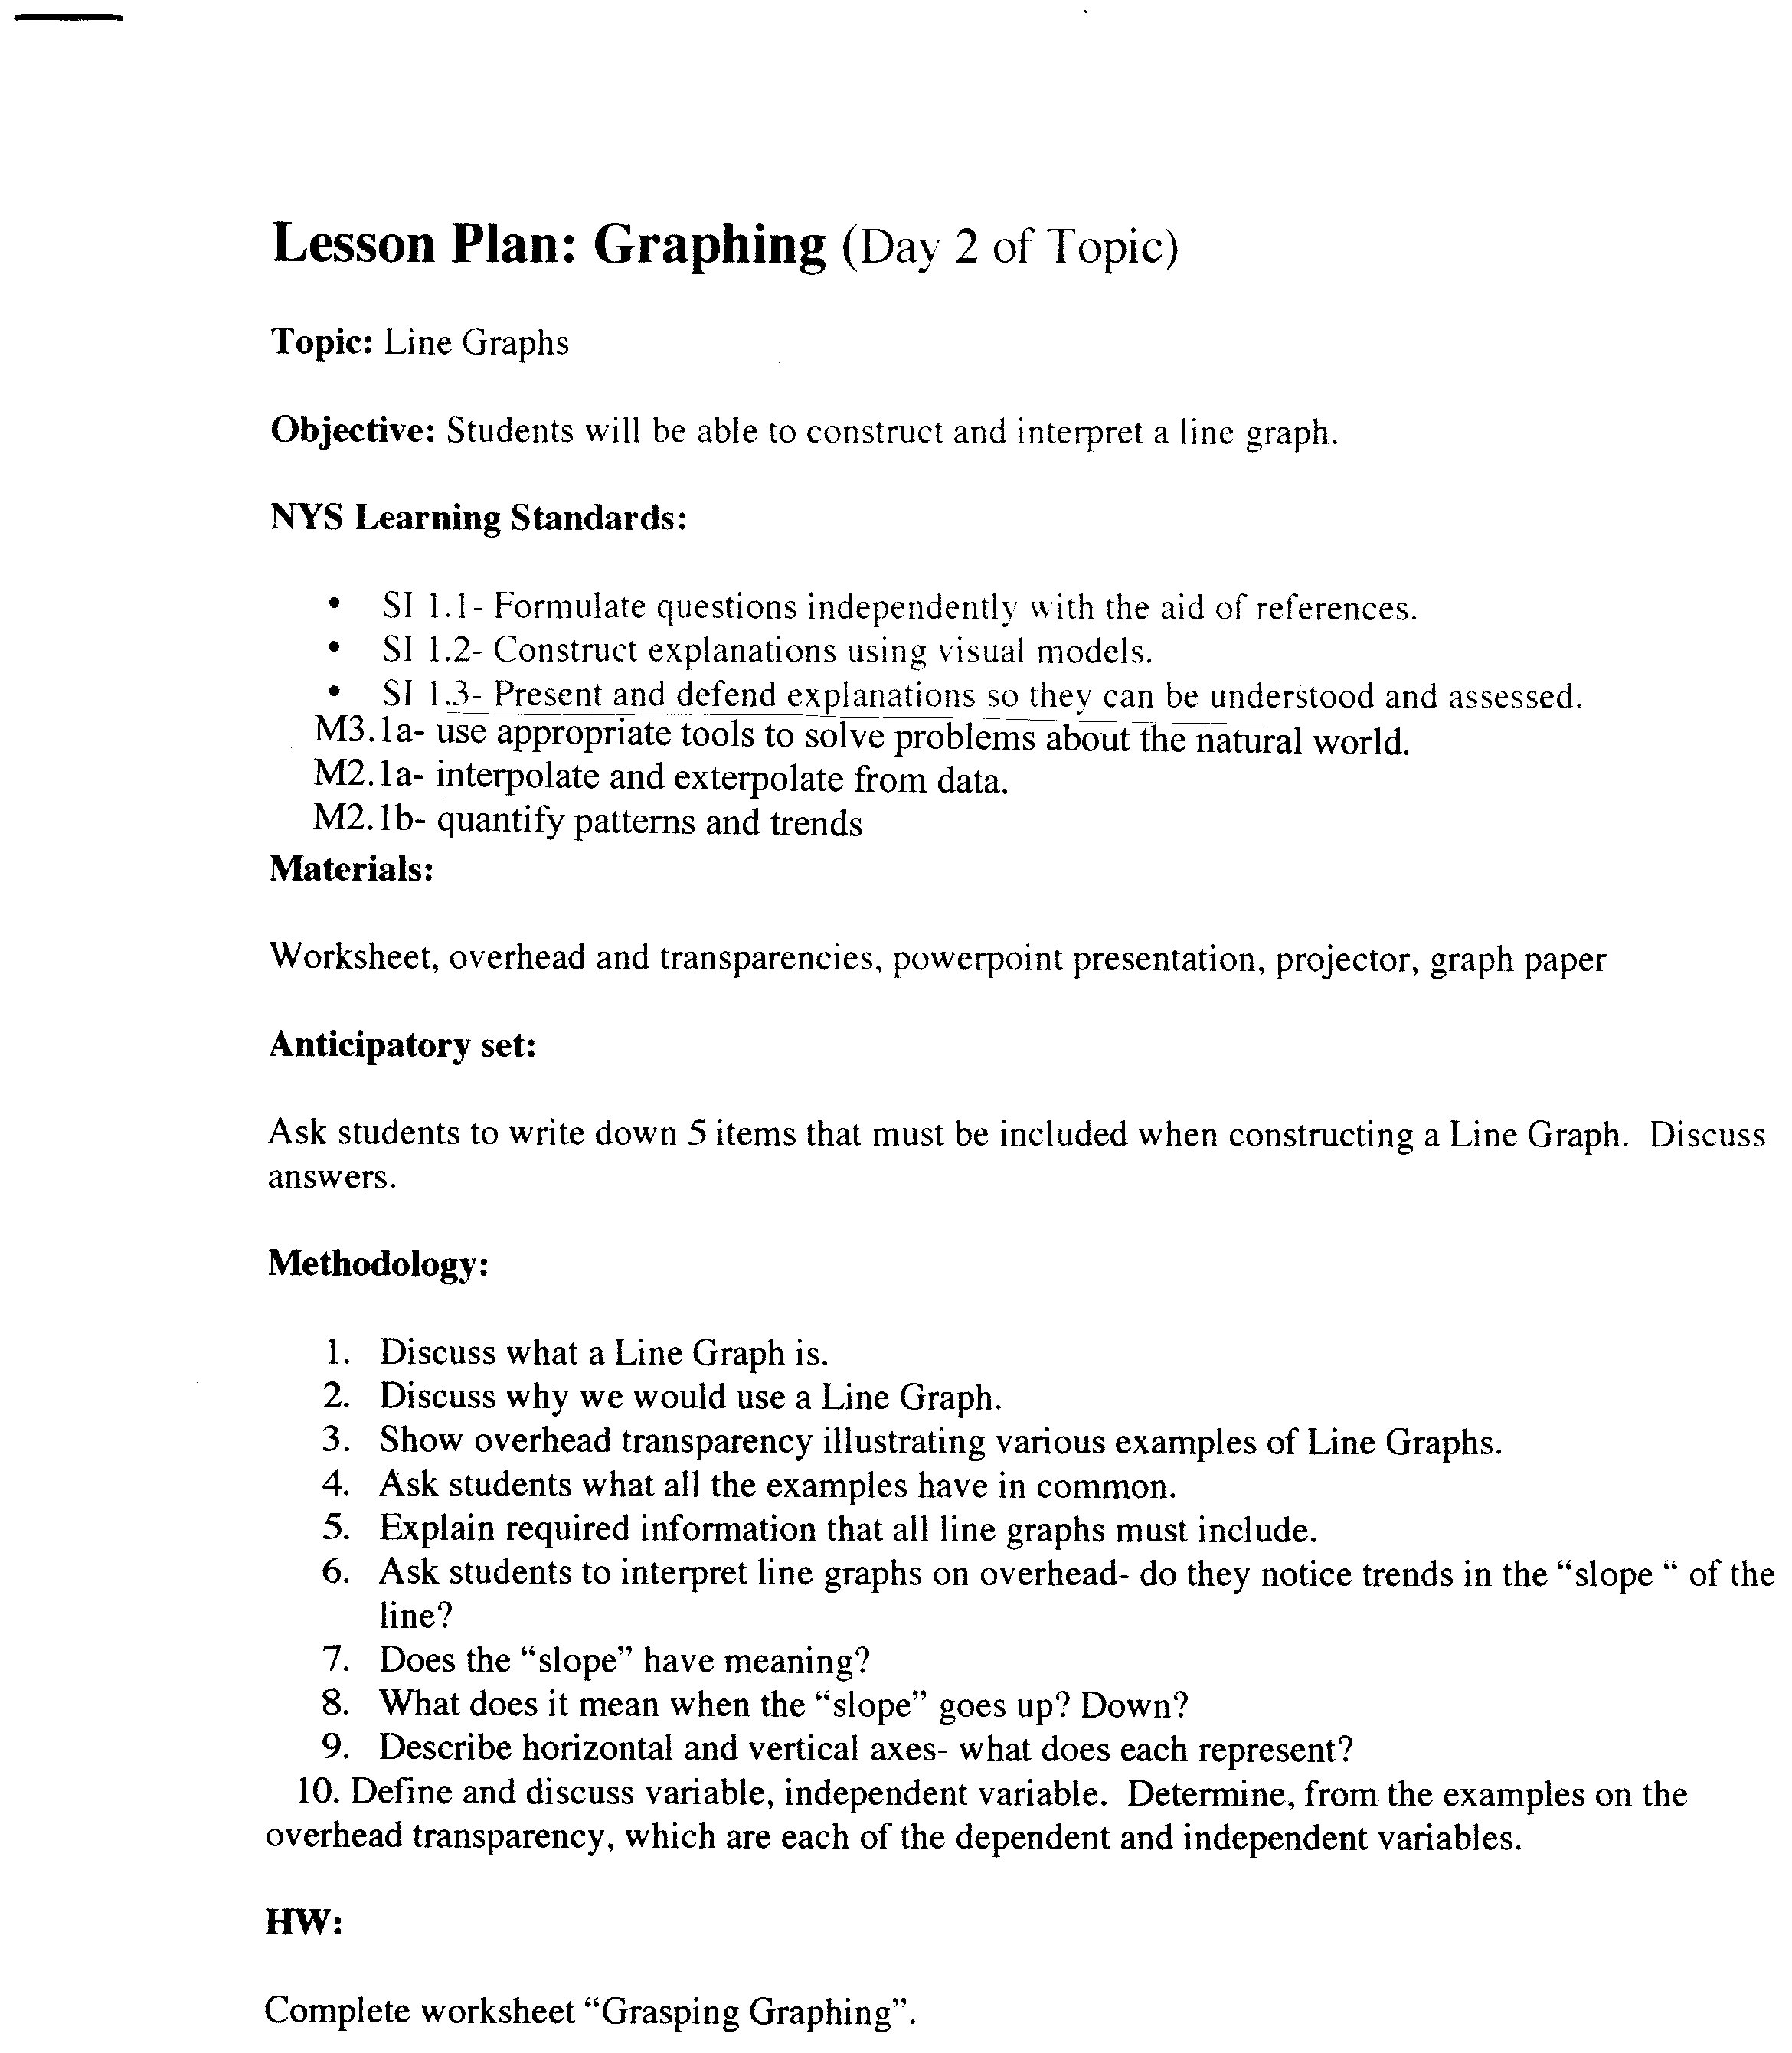 Worksheets Experimental Design Worksheet Scientific Method Answer Key experimental design worksheet scientific method answer key worksheets line graphs science skills